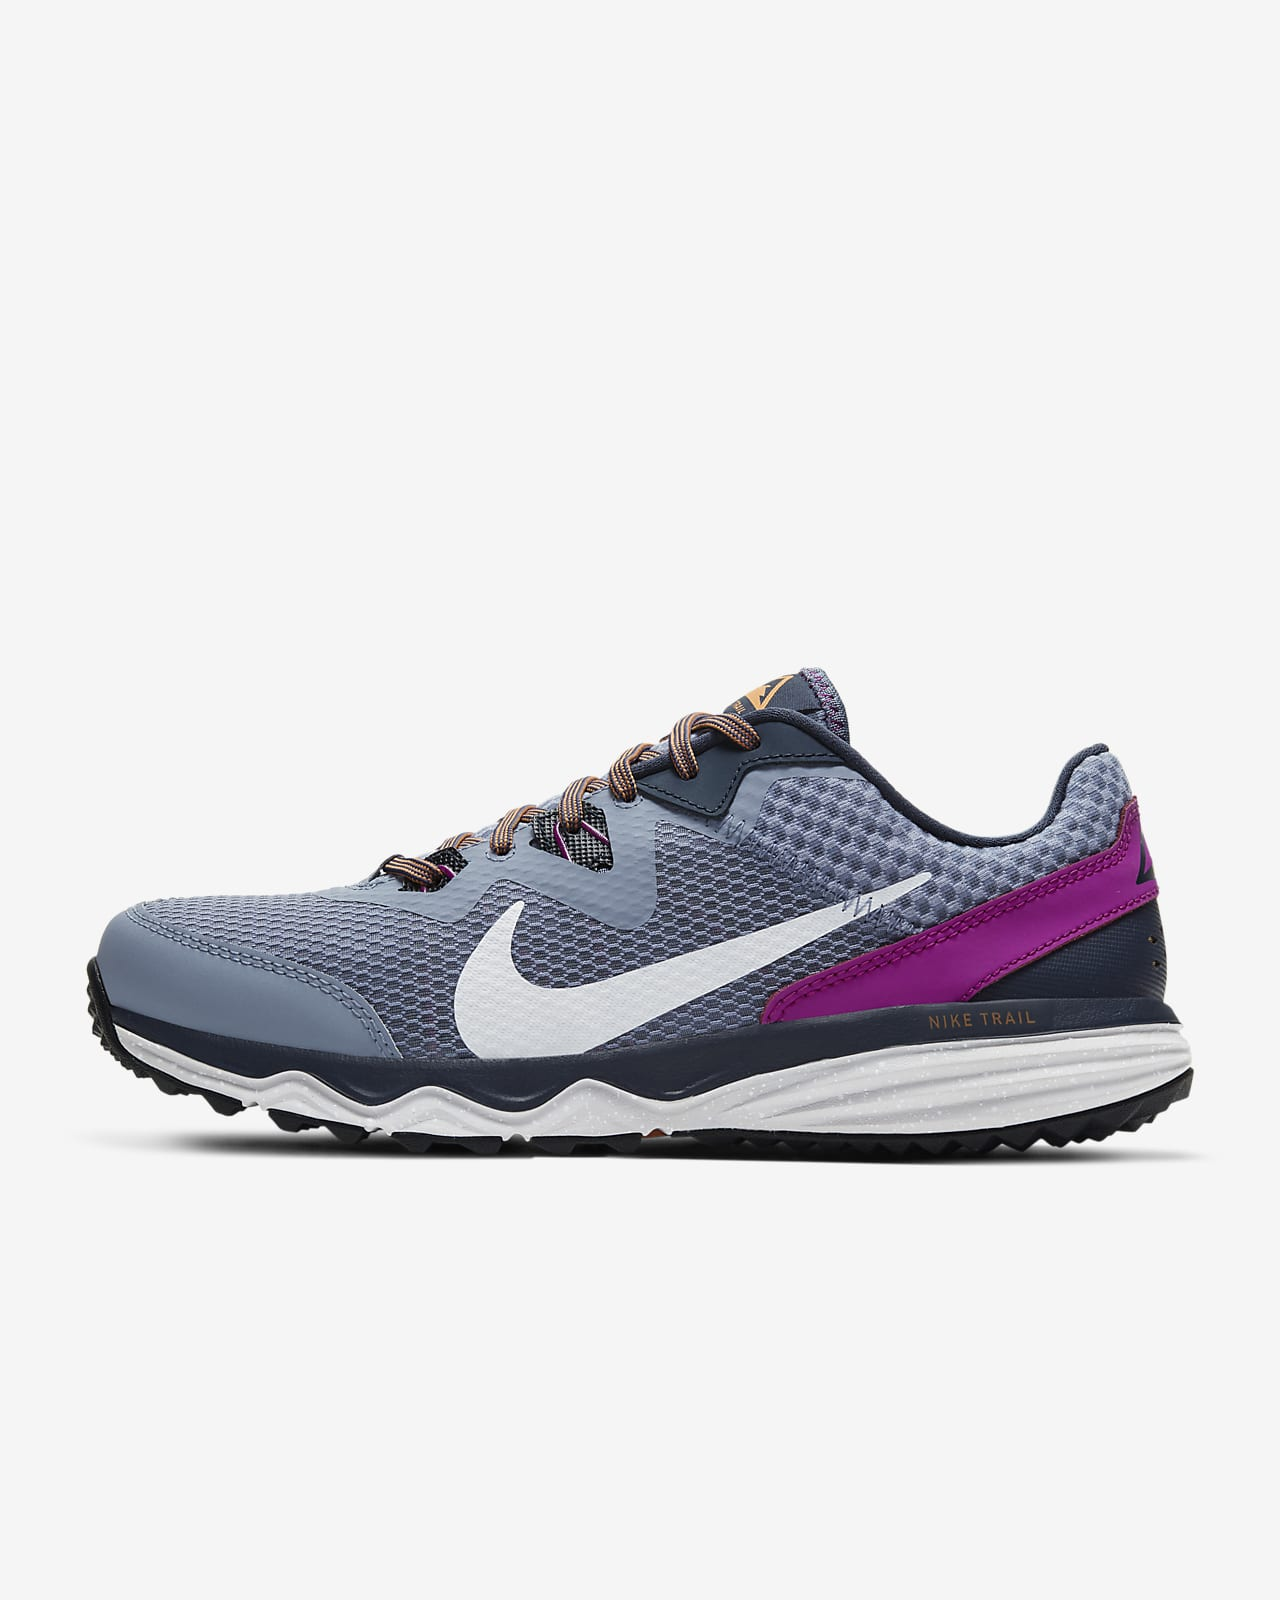 Nike Juniper Trail Women's Trail Shoe